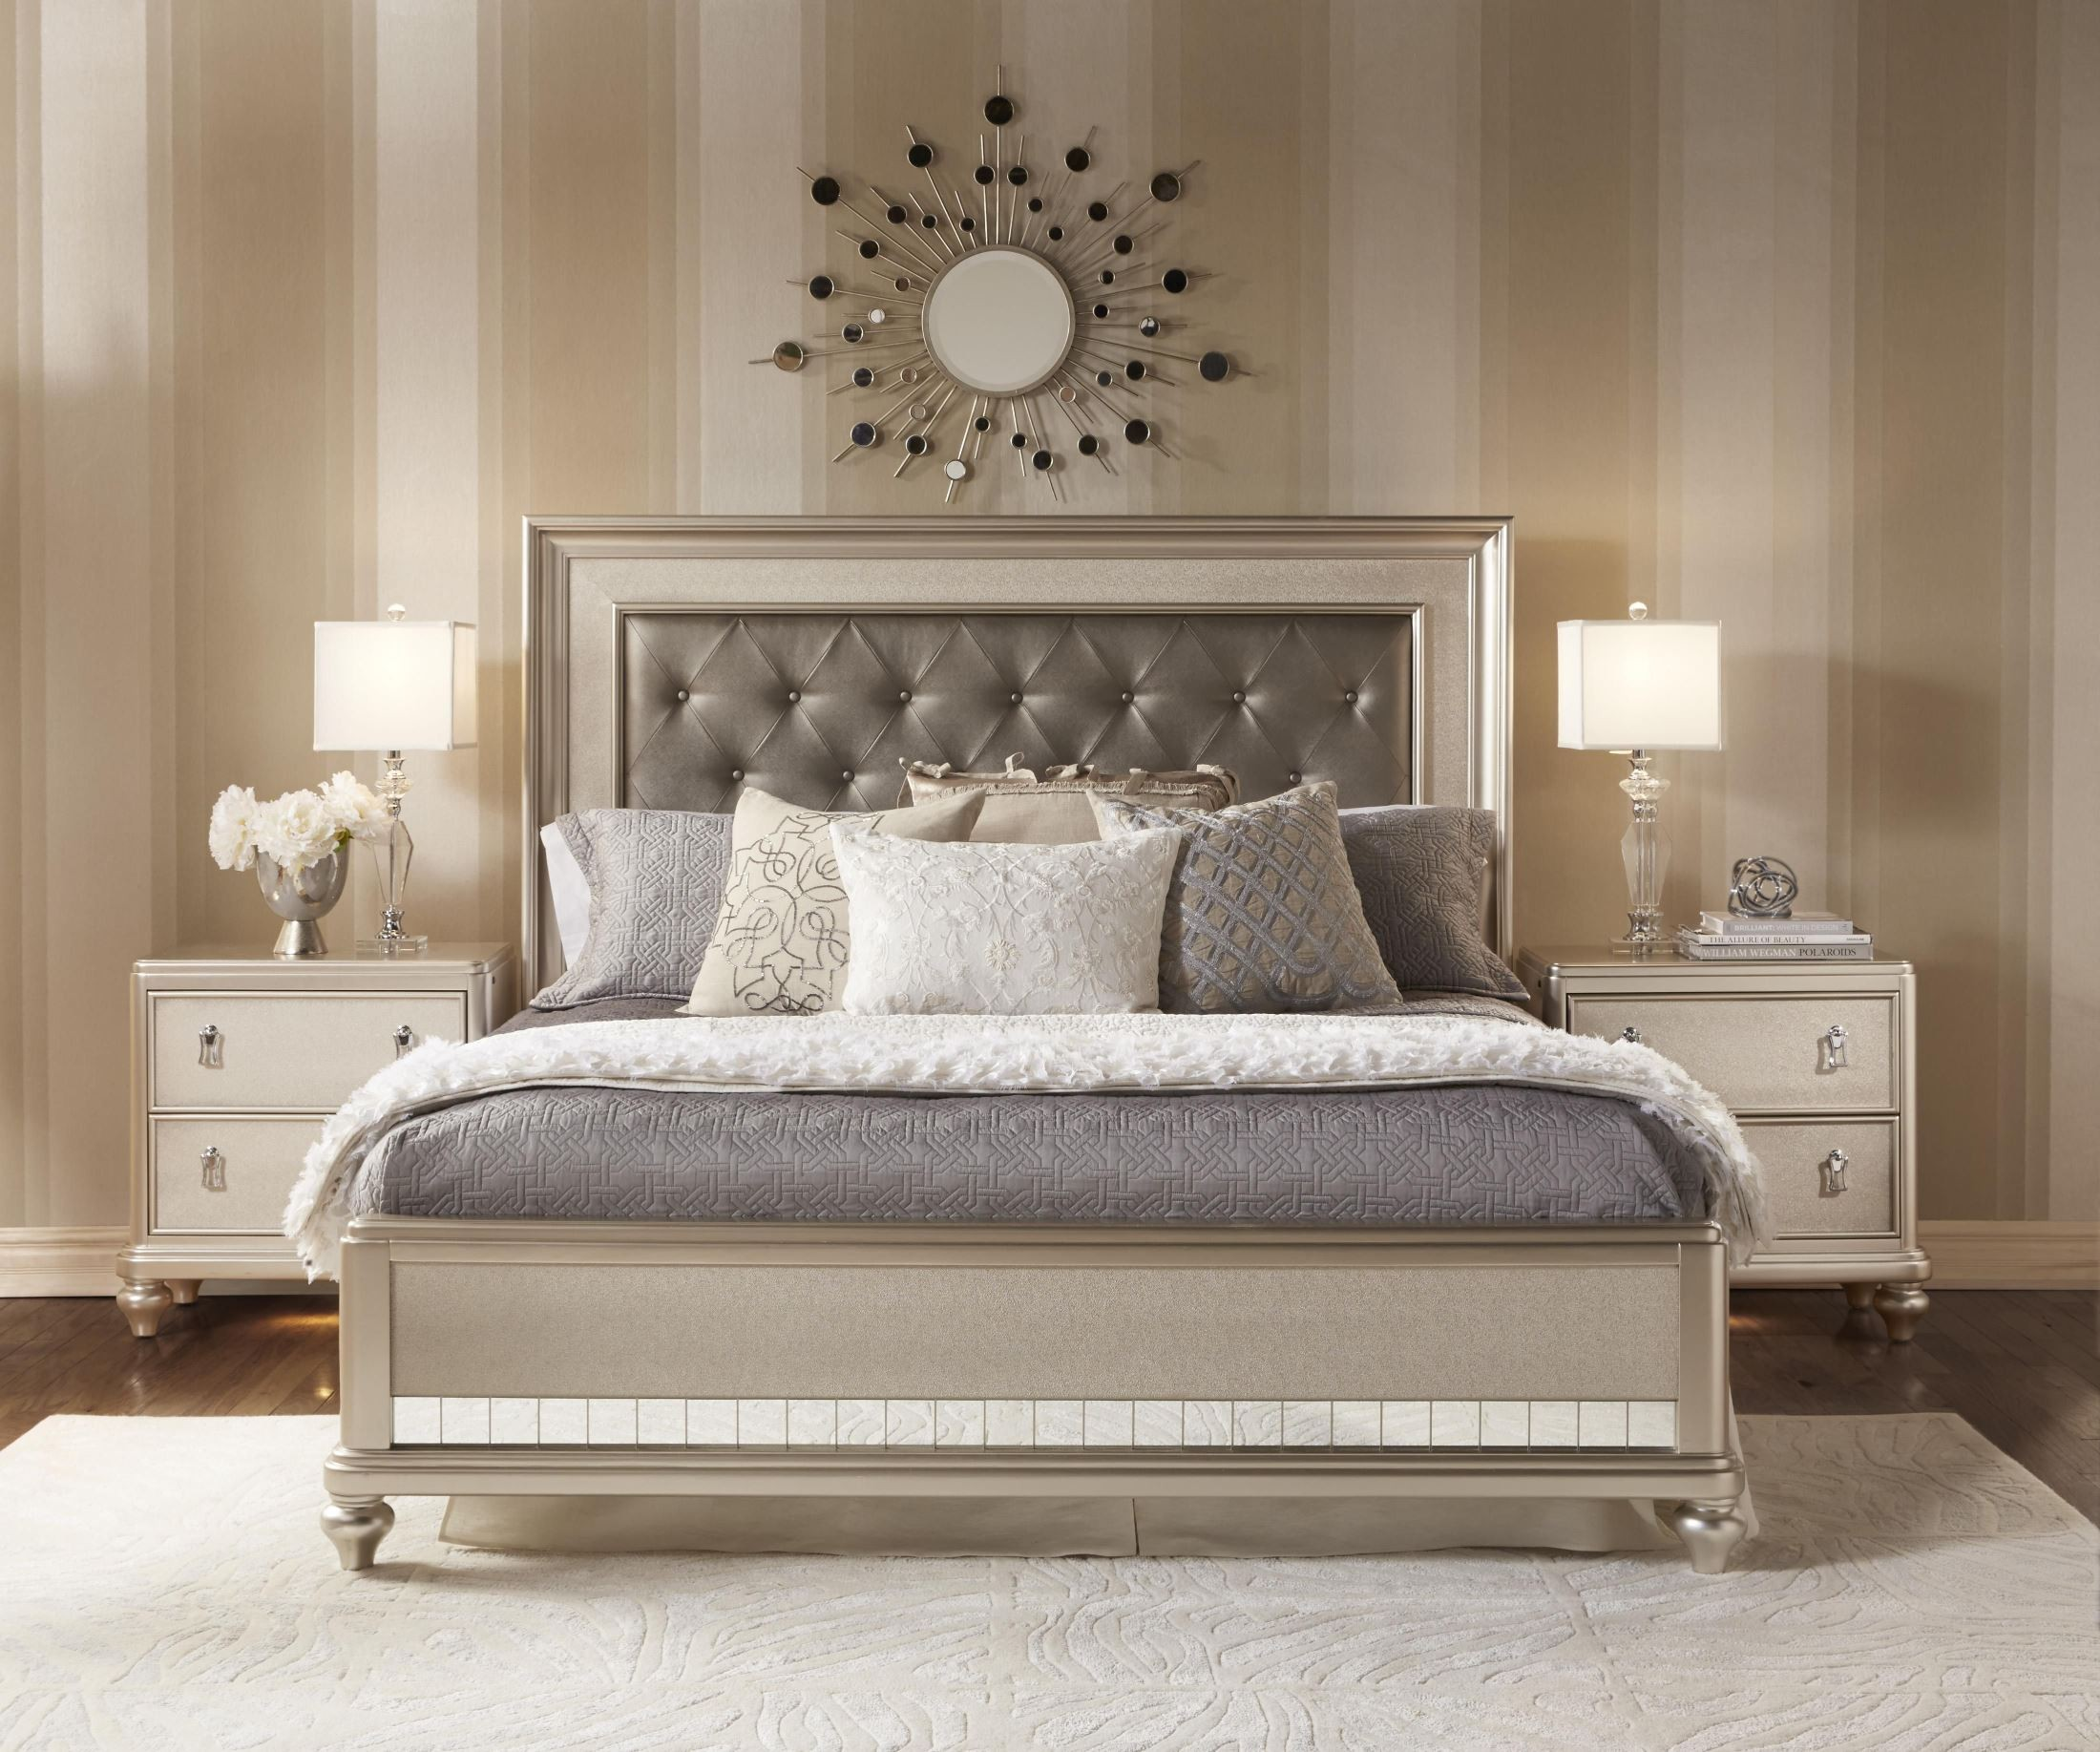 Diva panel bedroom set from samuel lawrence 8808 255 257 for Bedroom set and mattress